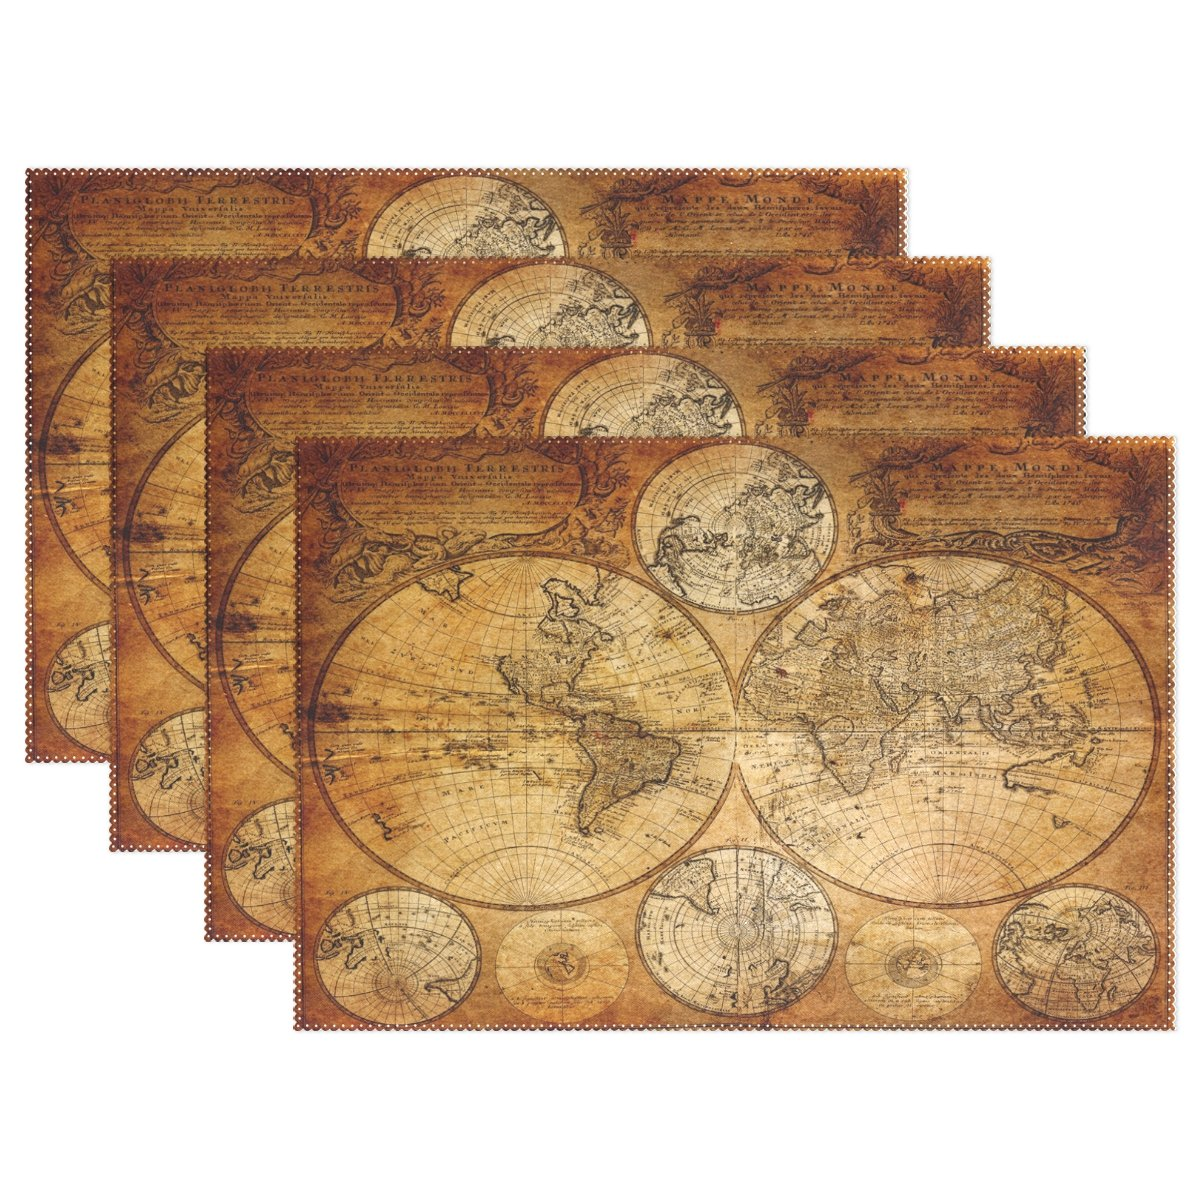 Vintage Old World Map Heat-resistant Table Placemats Set of 6 Stain Resistant Table Mats Washable Eat Mat for Parties Everyday & Holidays Use by Naanle